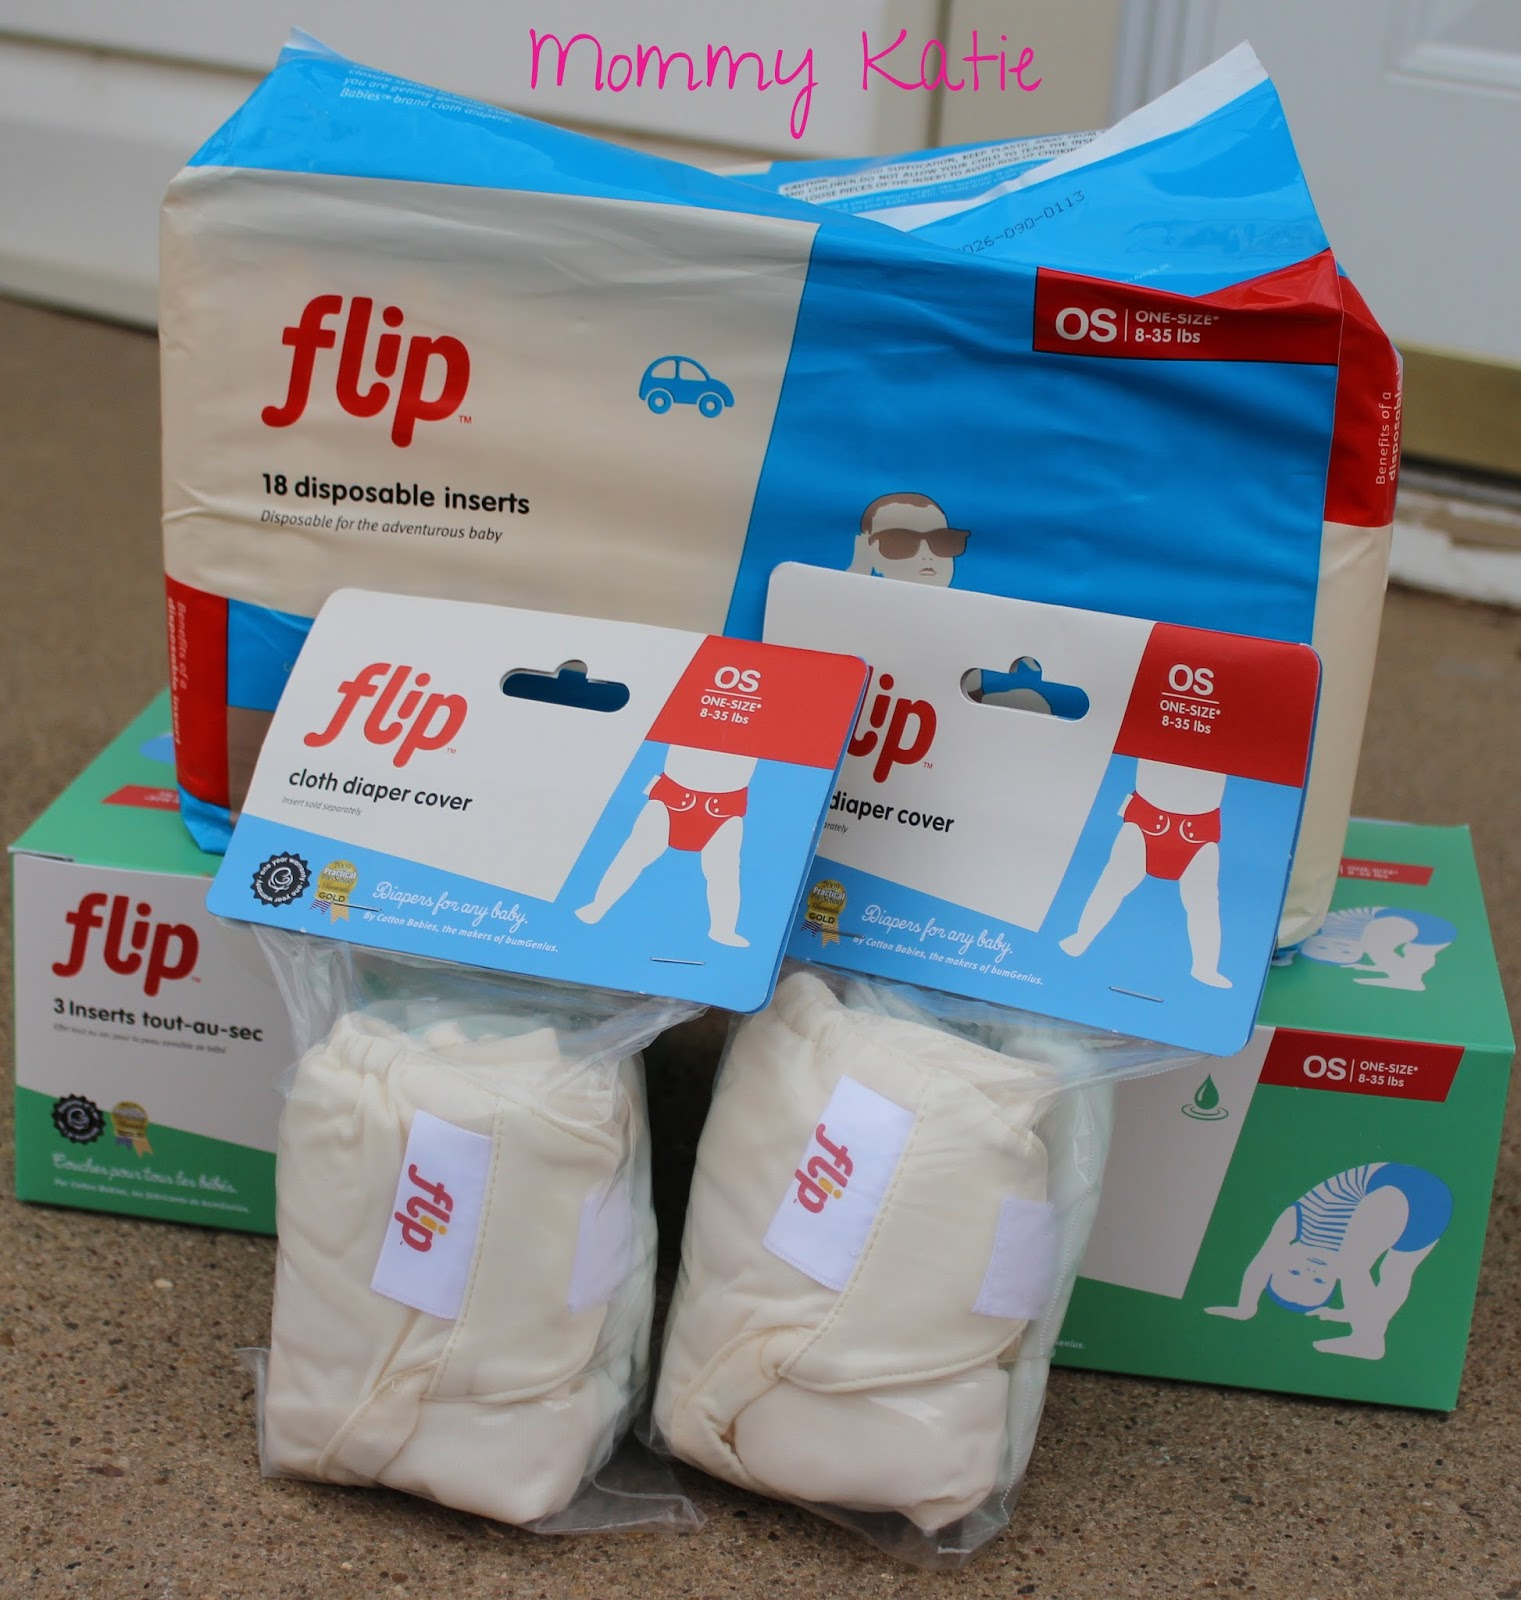 Mommy Katie: Flip Hybrid Diaper System (Surprise Online Baby Shower)